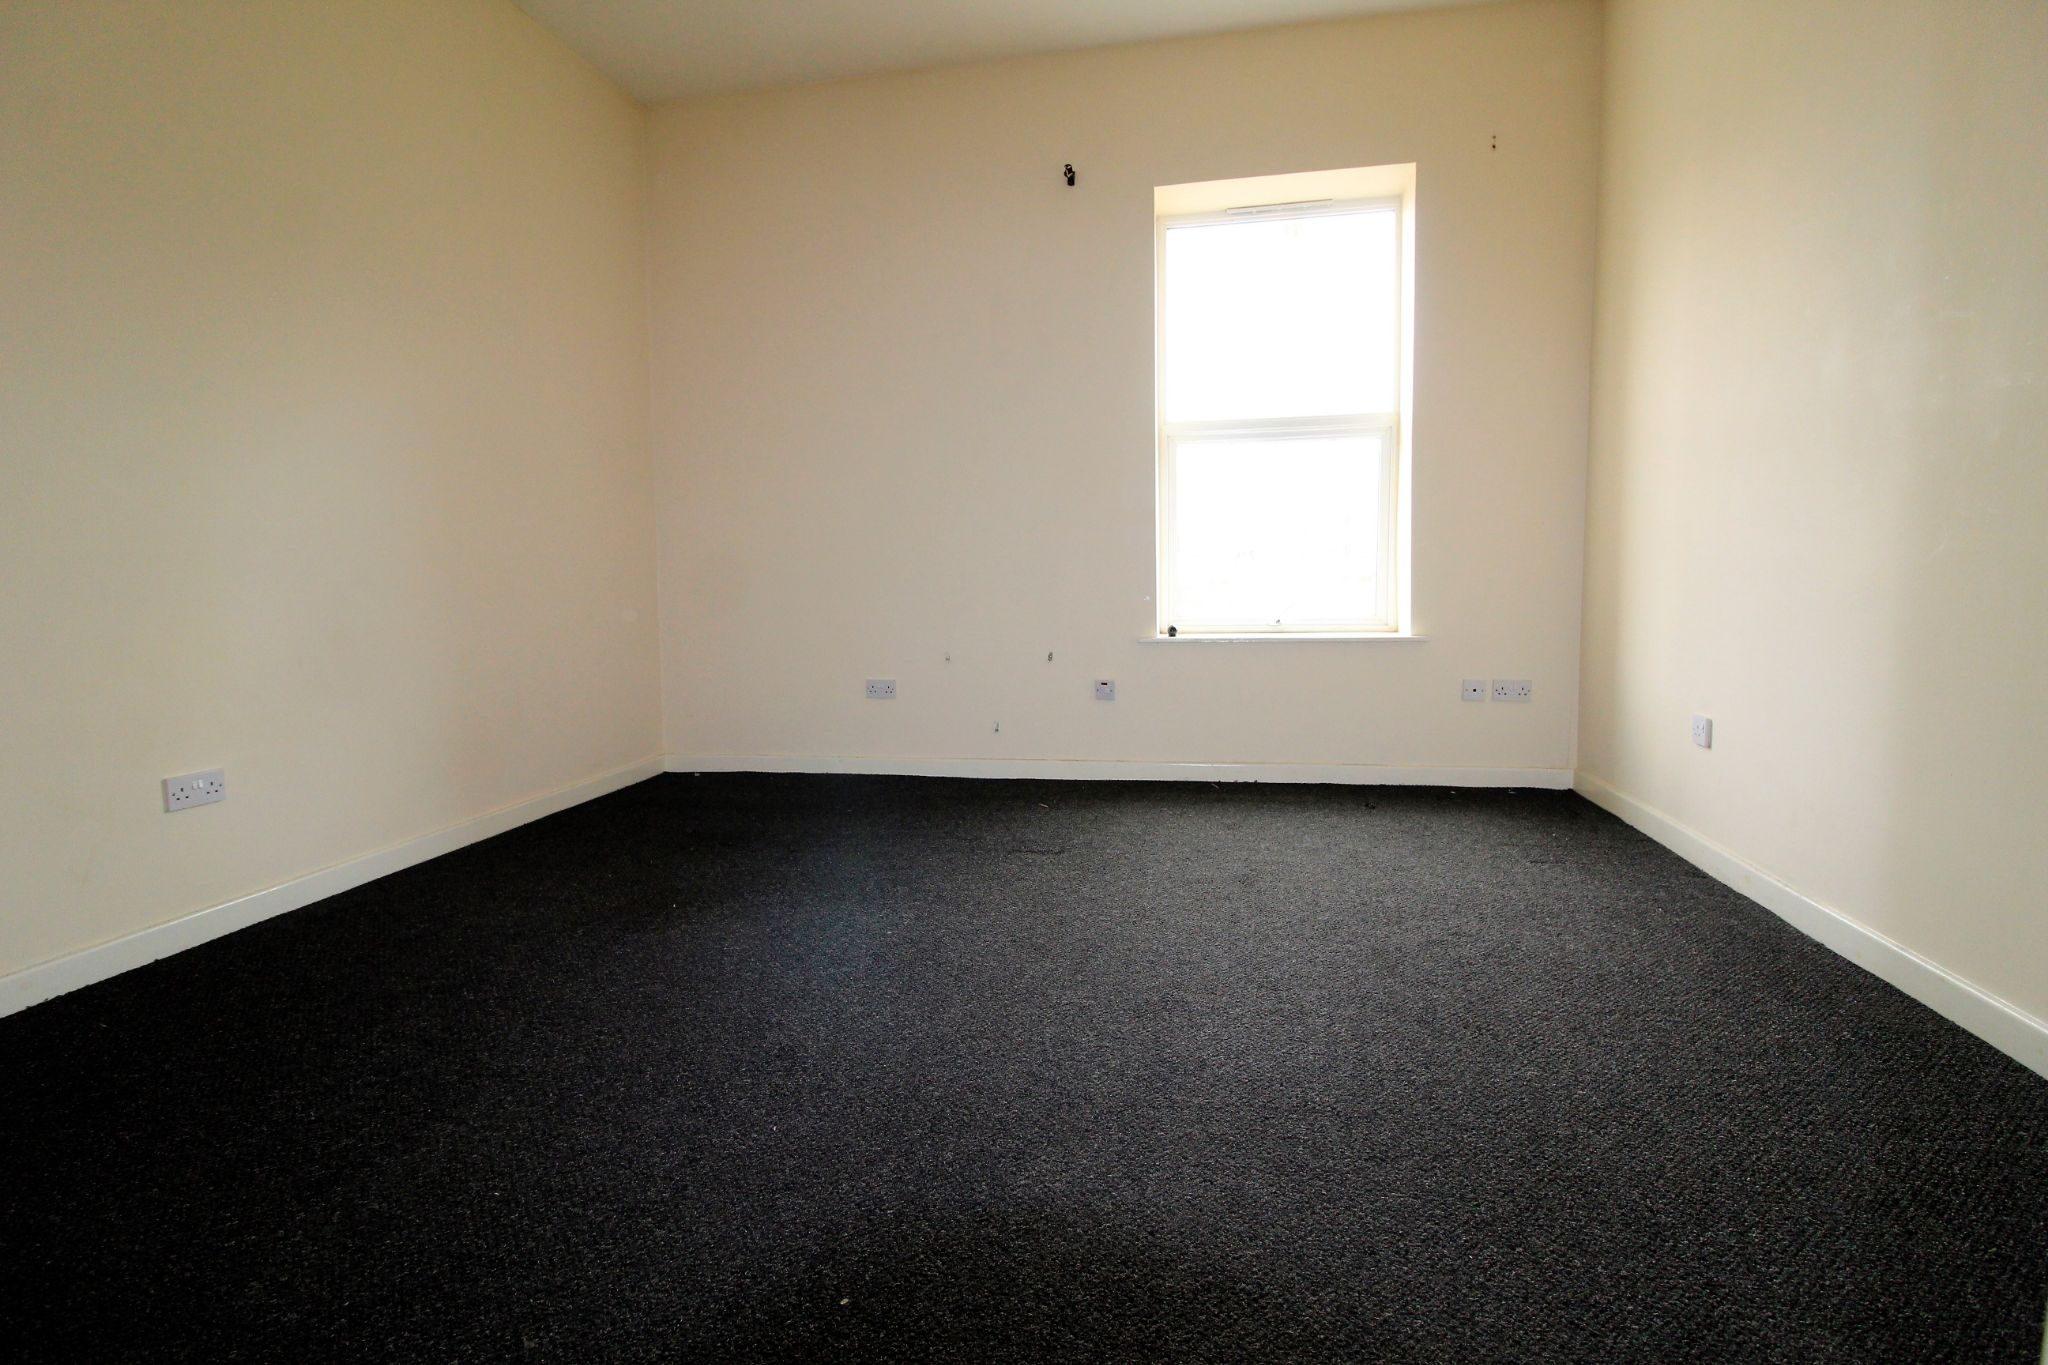 1 bedroom bedsit flat/apartment Let in Brighouse - Living area/Bedroom